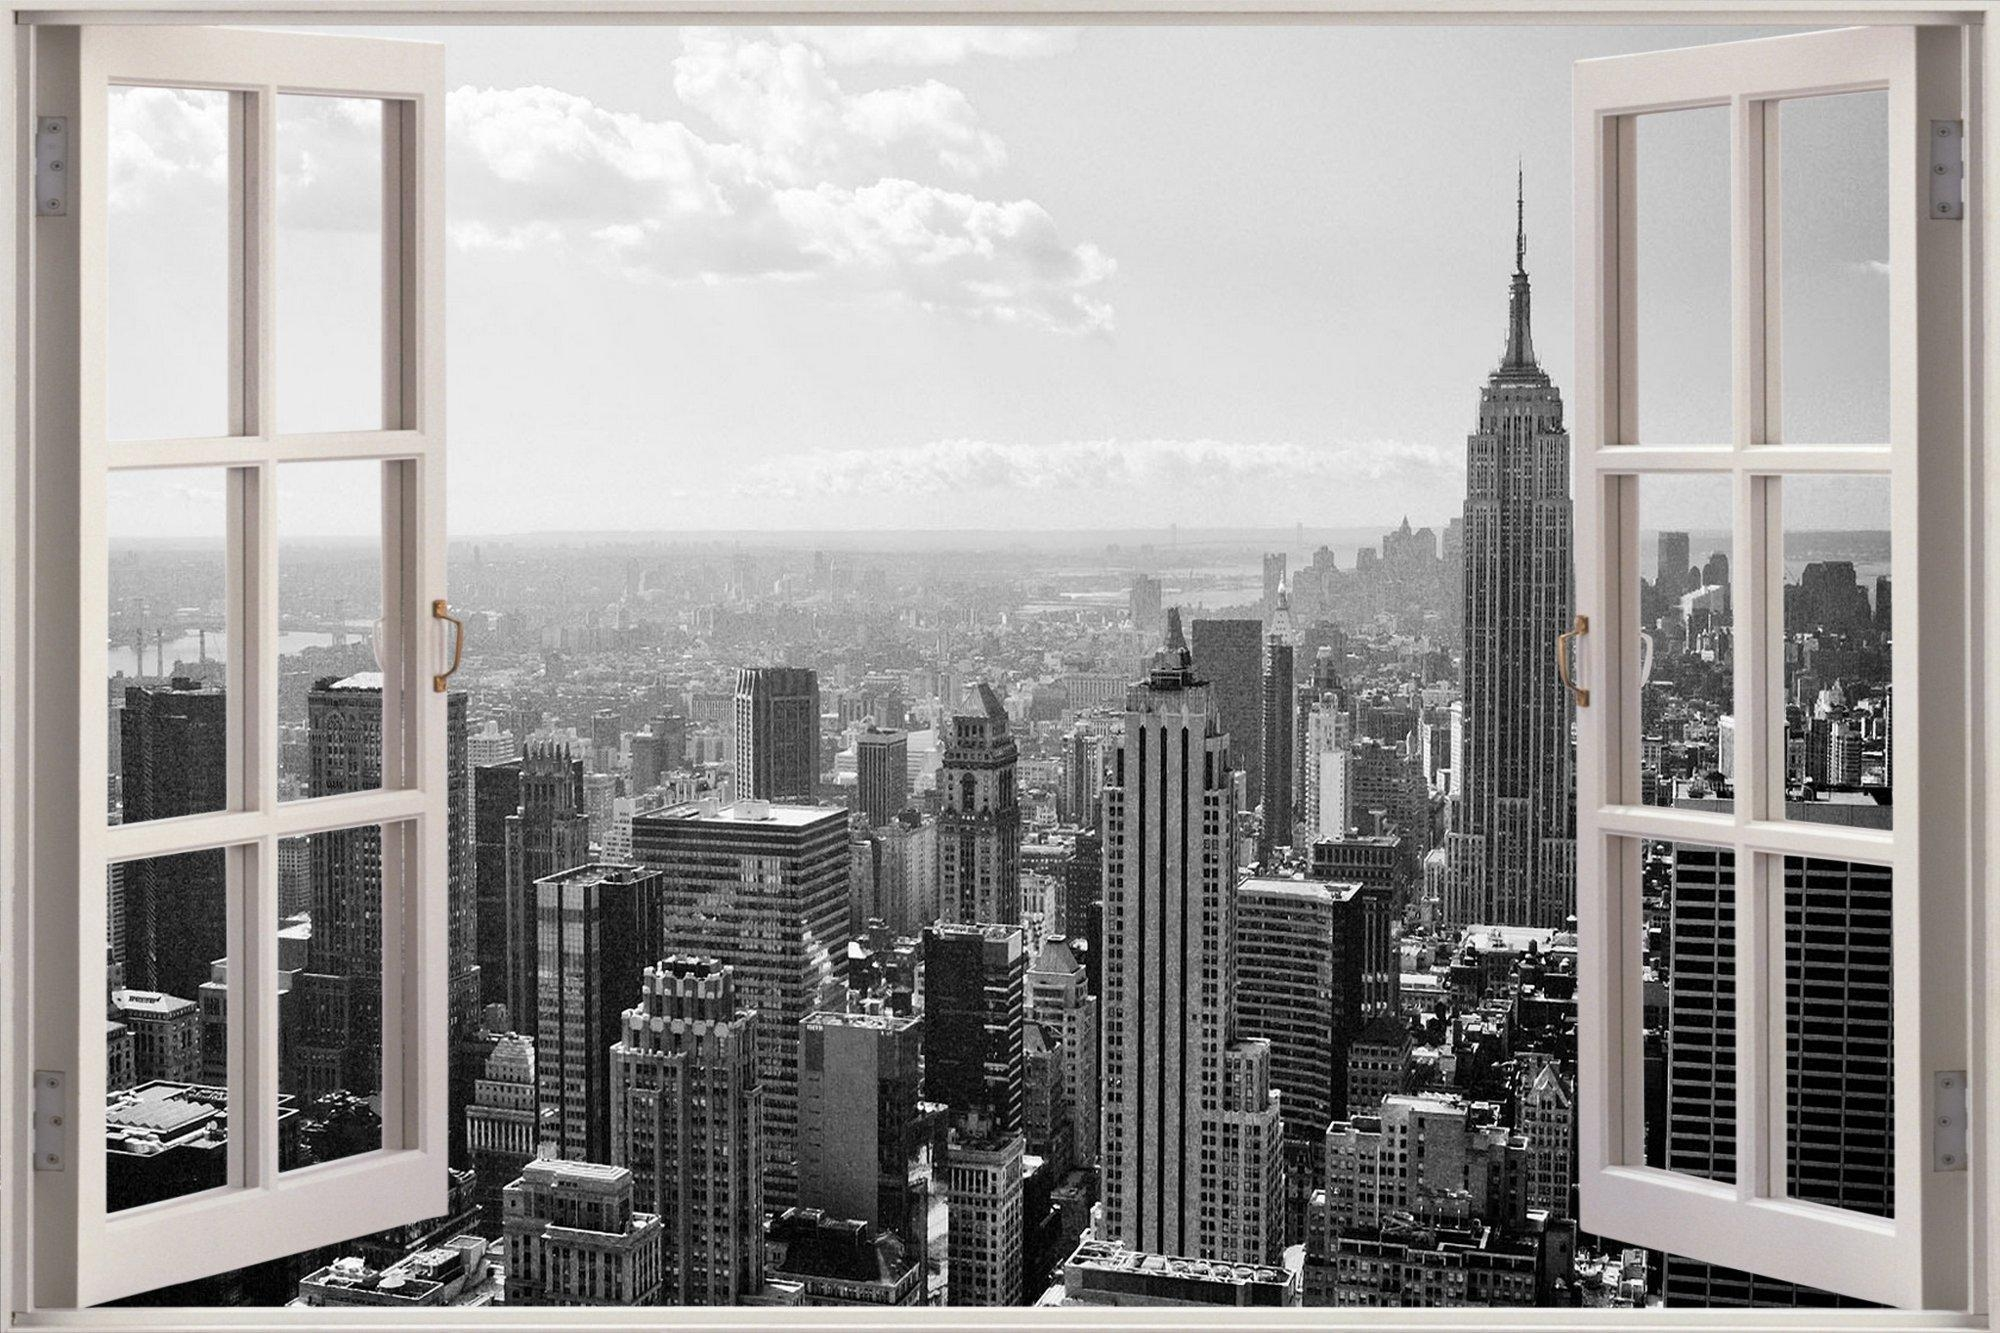 Huge 3D Window New York City View Wall Stickers Mural Film Art Intended For New York City Wall Art (View 20 of 20)